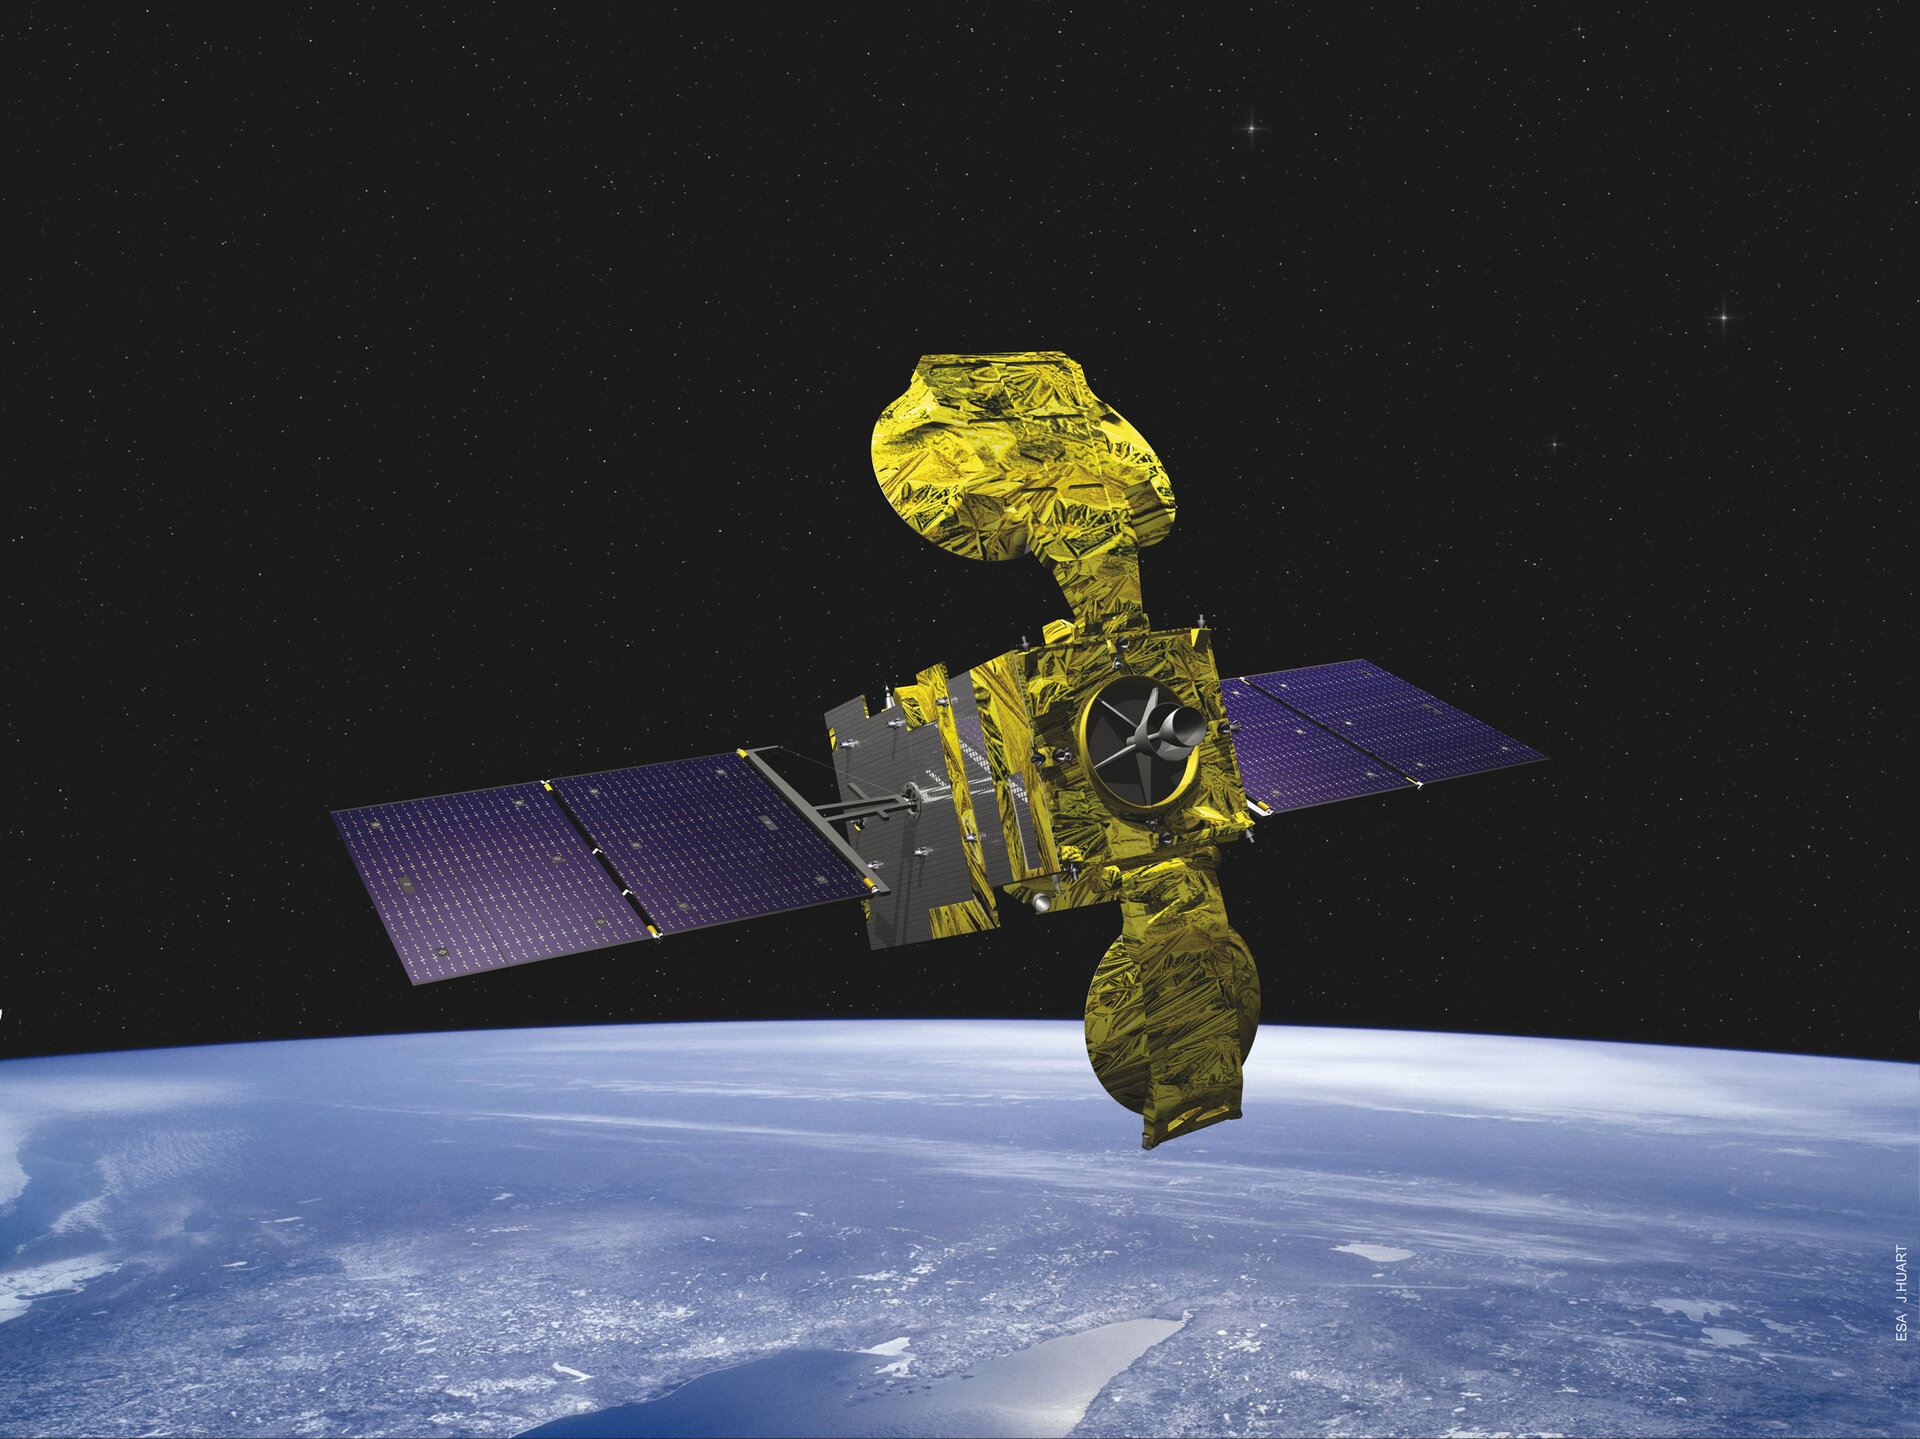 Hylas 1 Satellite